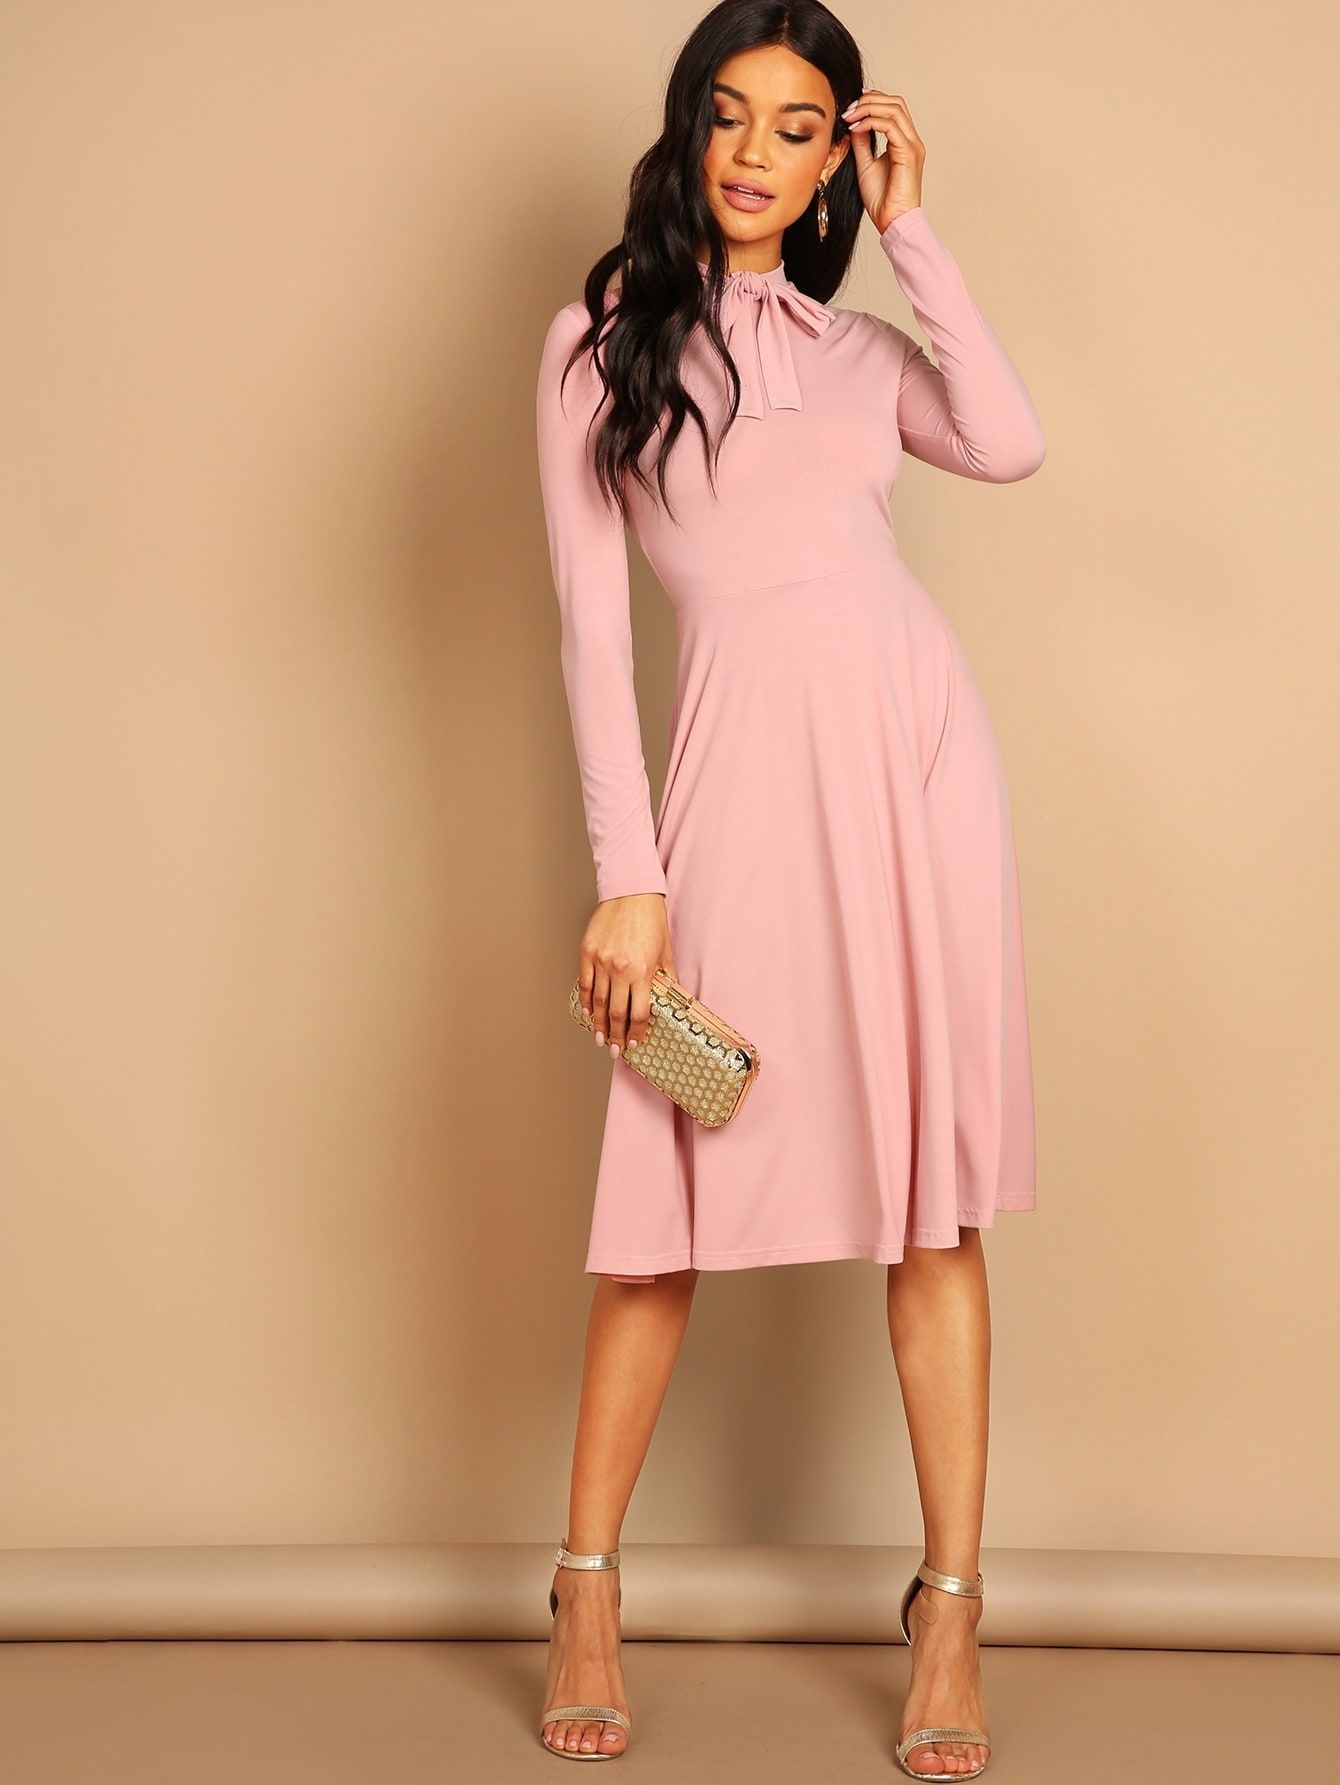 445a456ed4 Casual Plain Shift High Neck Long Sleeve Natural Pink Knee Length Tie Neck  Solid Flowy Dress. Tie Neck Solid Flare Dress | SHEIN Next Dresses, Fit ...